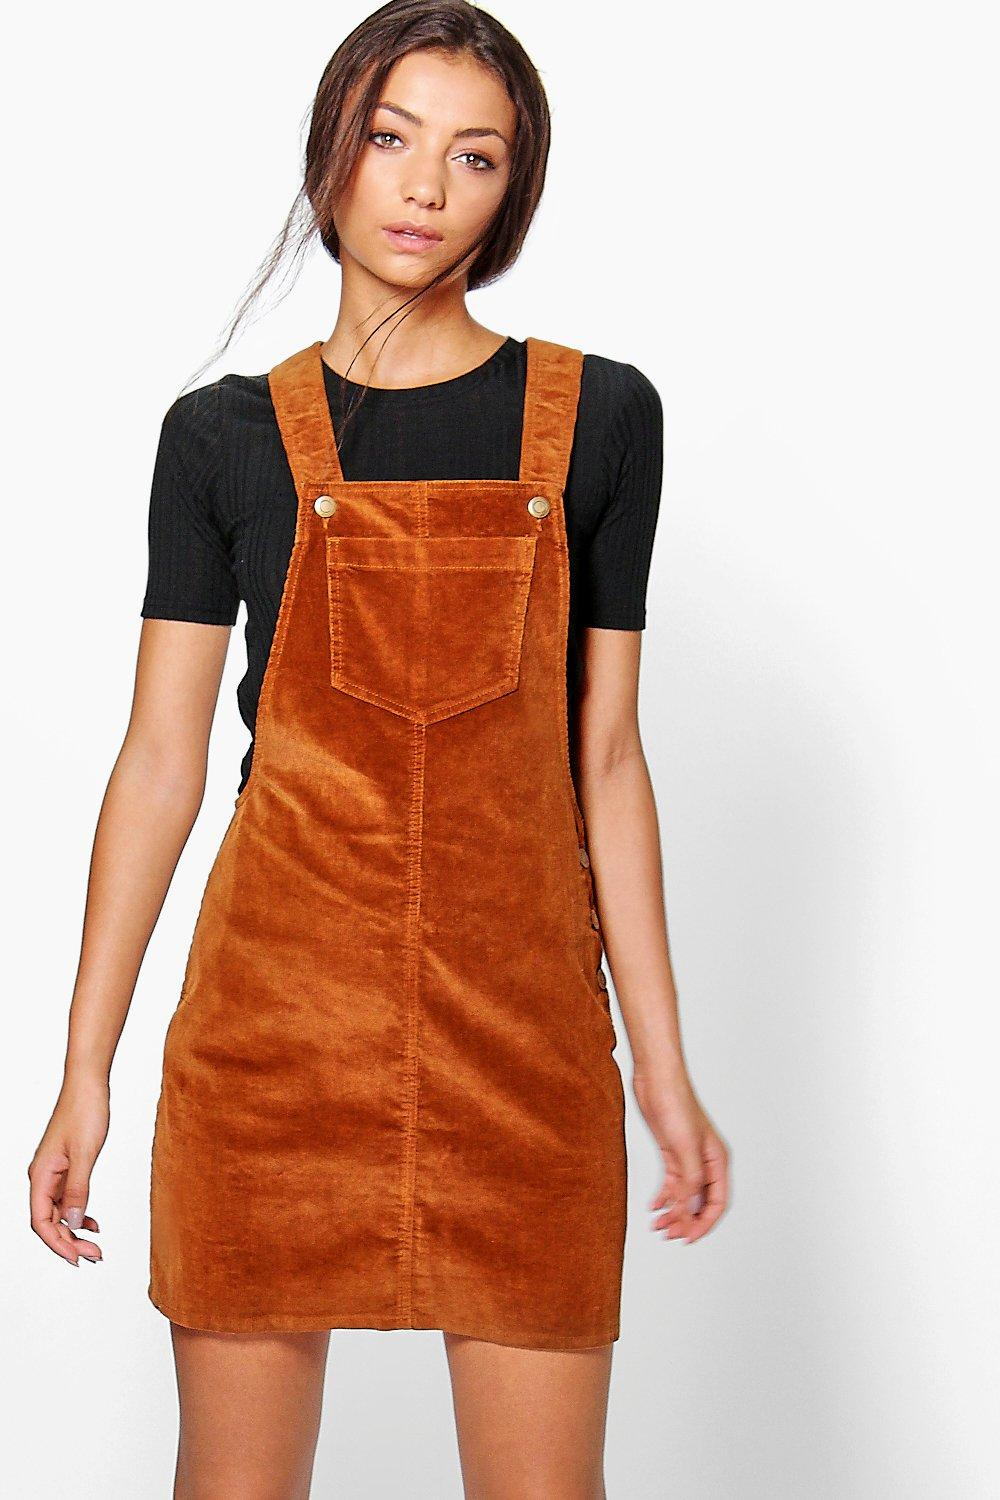 Find the perfekt Dungaree Jeans Fit here! Check out our full range of Women's Dungarees & Bibs online at reformpan.gq We use cookies to enhance your shopping experience.